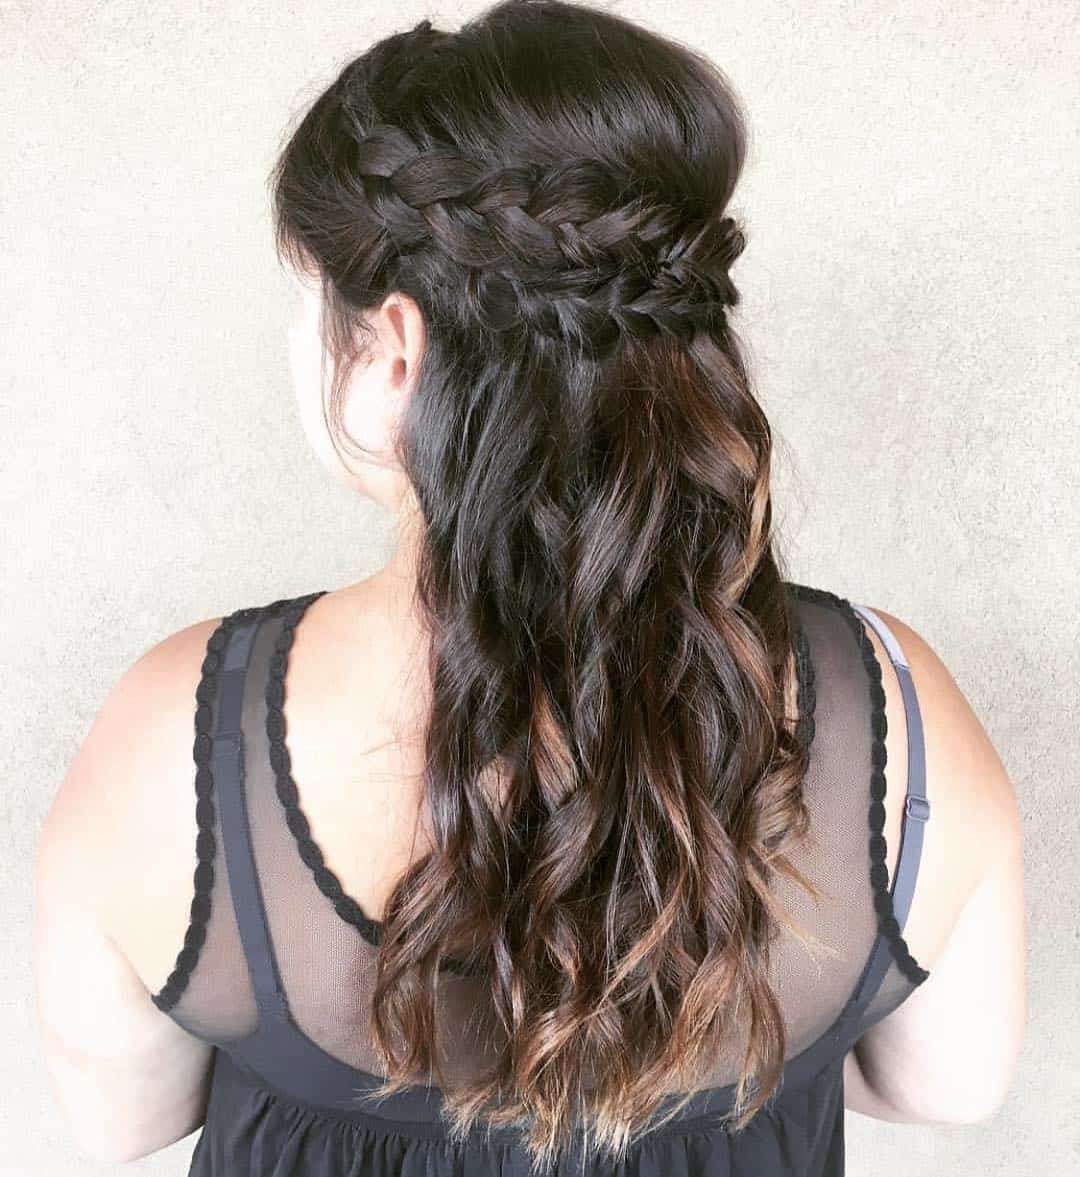 bridal hair services from Aveda salon in Boulder, CO